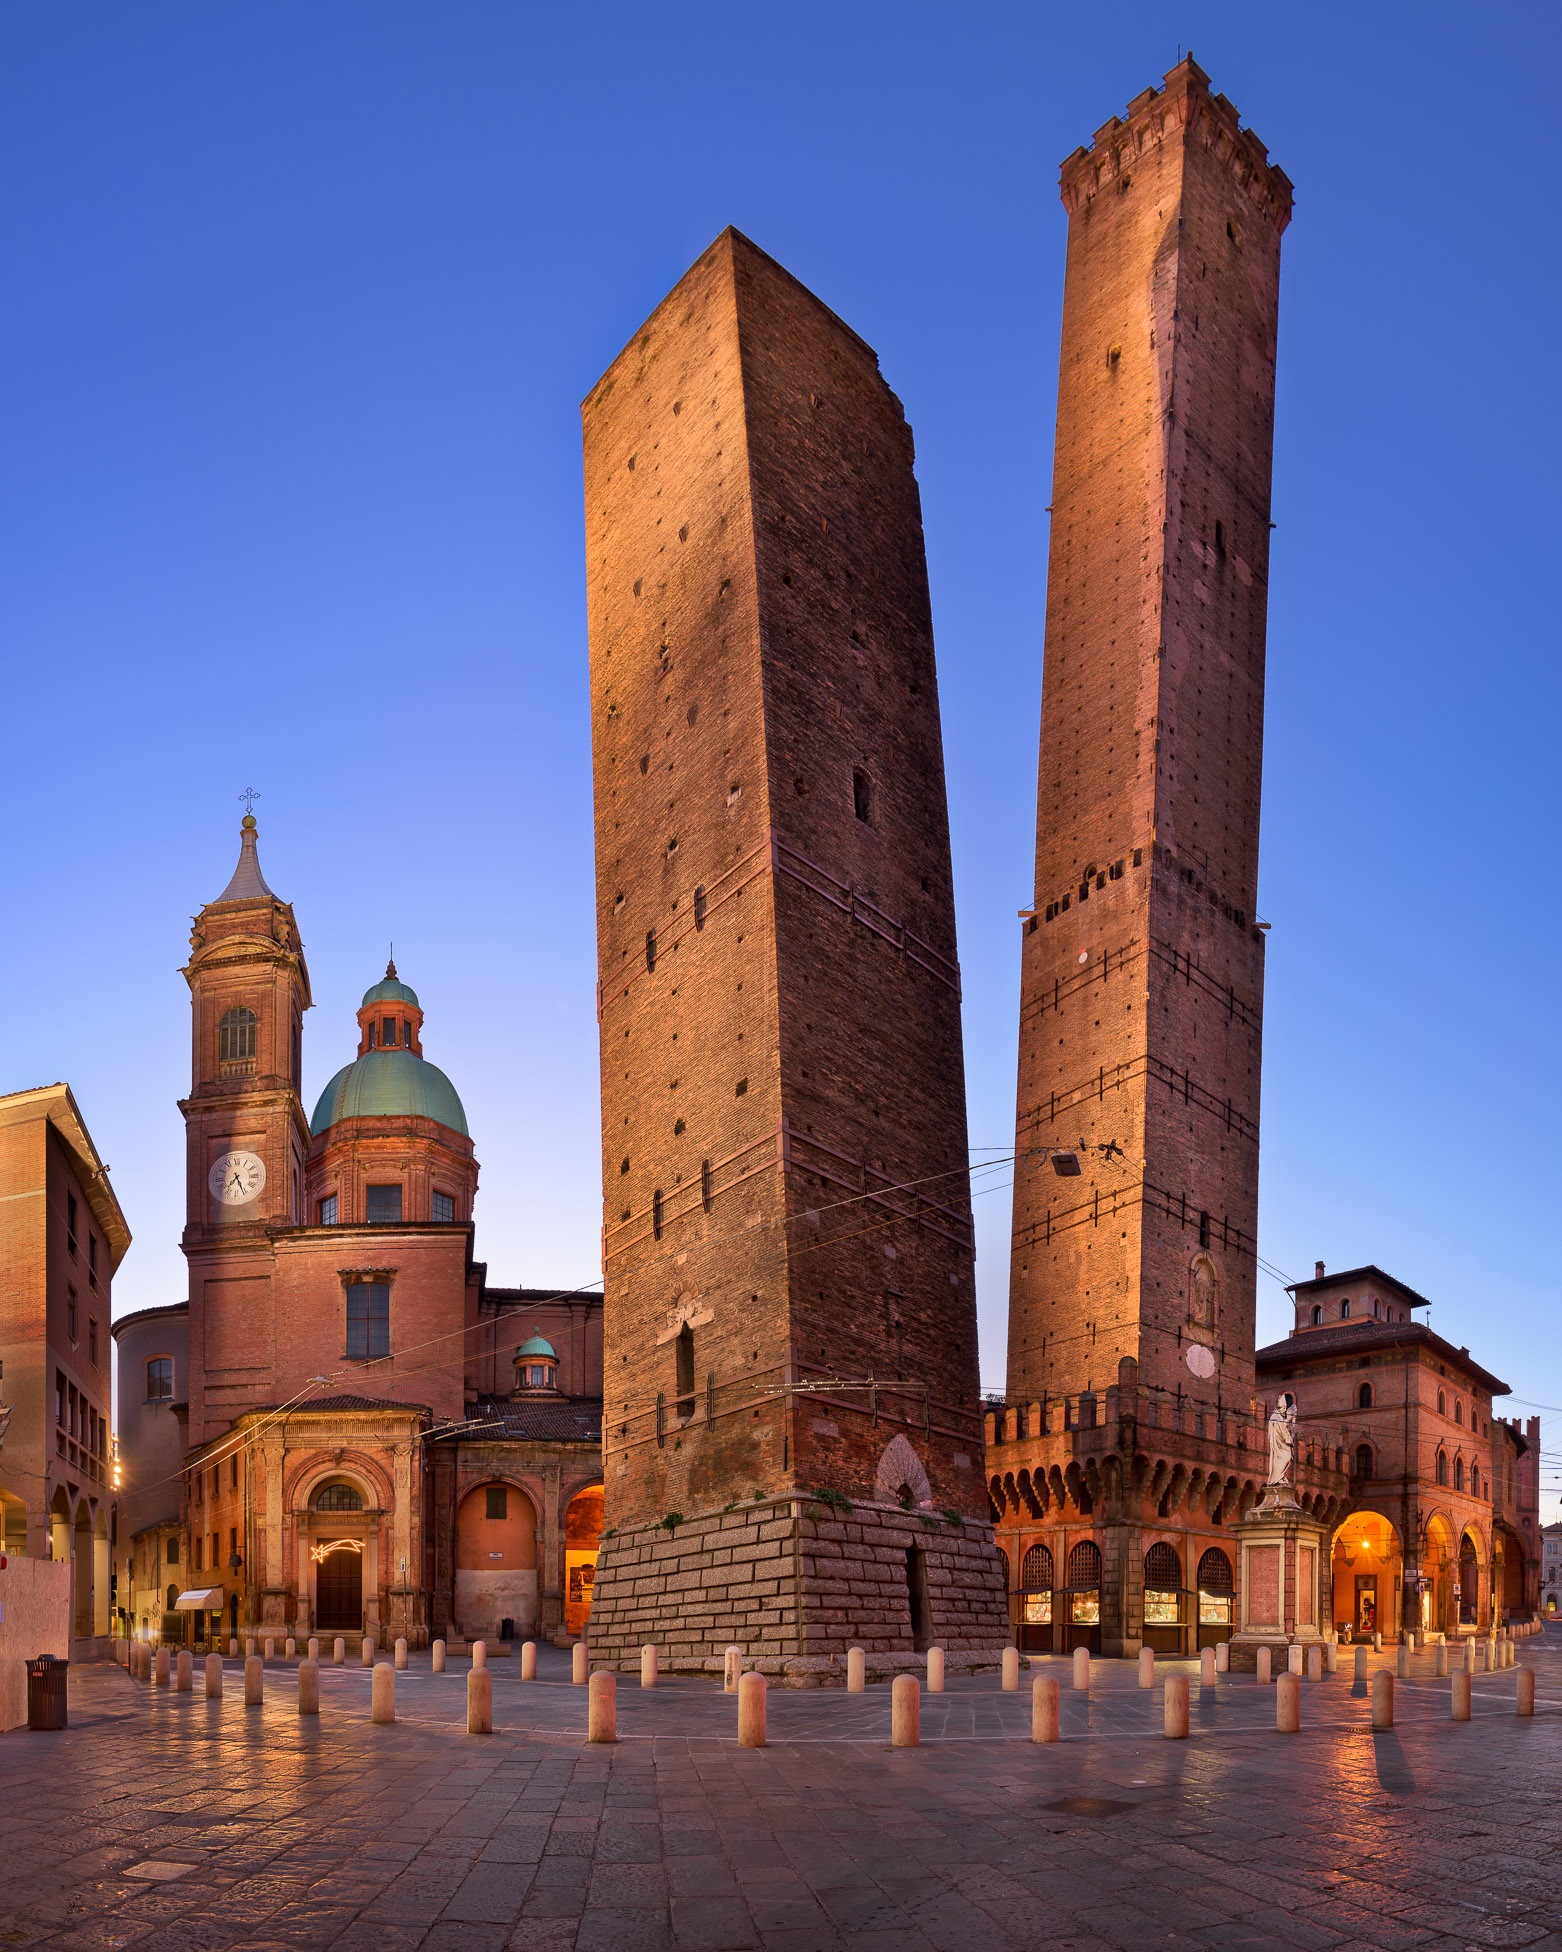 Two Towers and Chiesa di San Bartolomeo in the Morning, Bologna, Emilia-Romagna, Italy